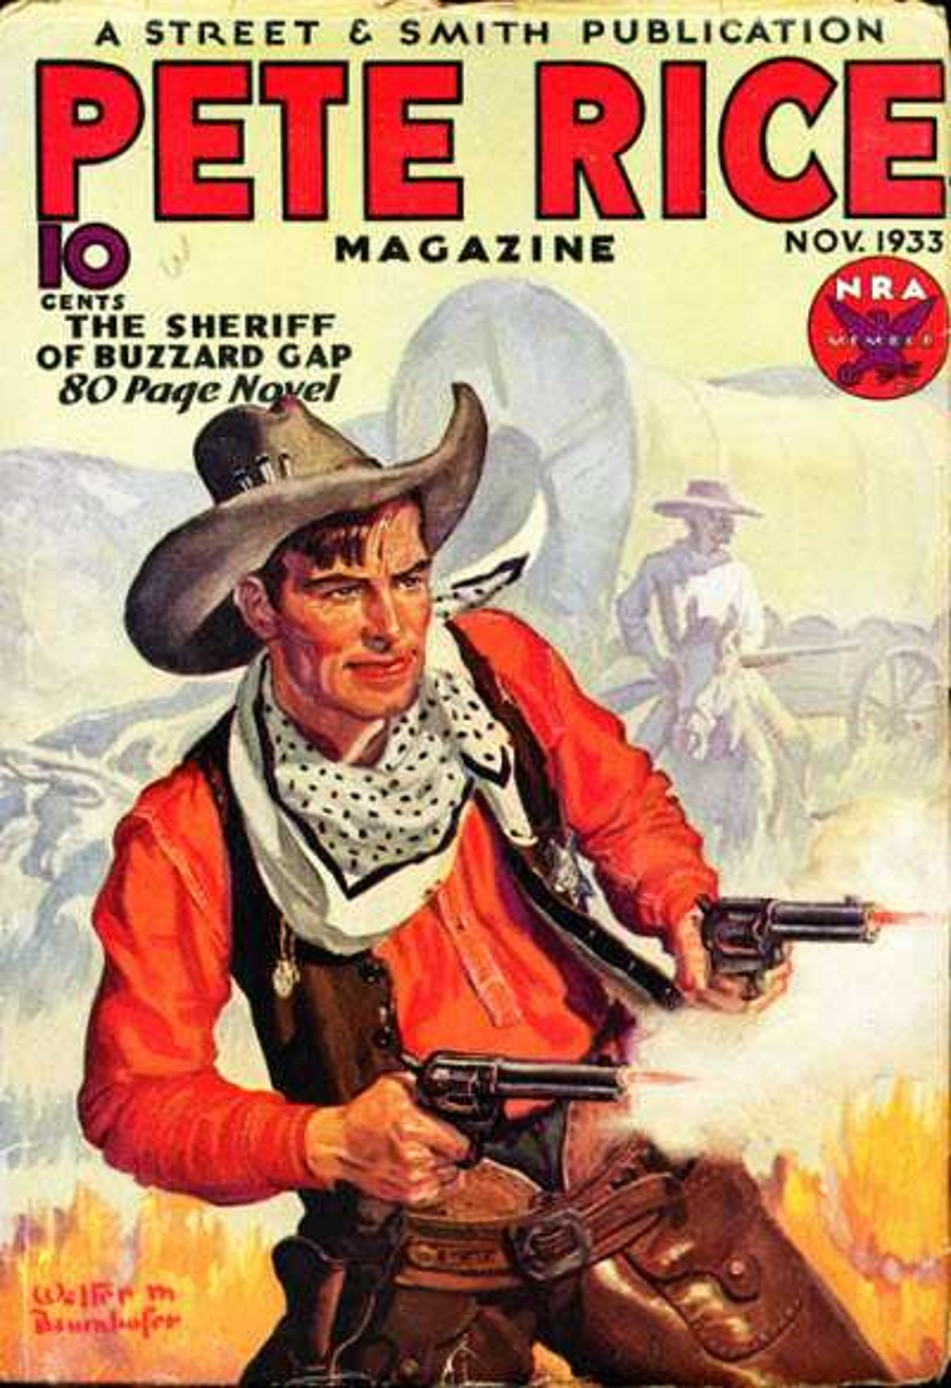 Rough Edges Saturday Morning Western Pulp Pete Rice Magazine November